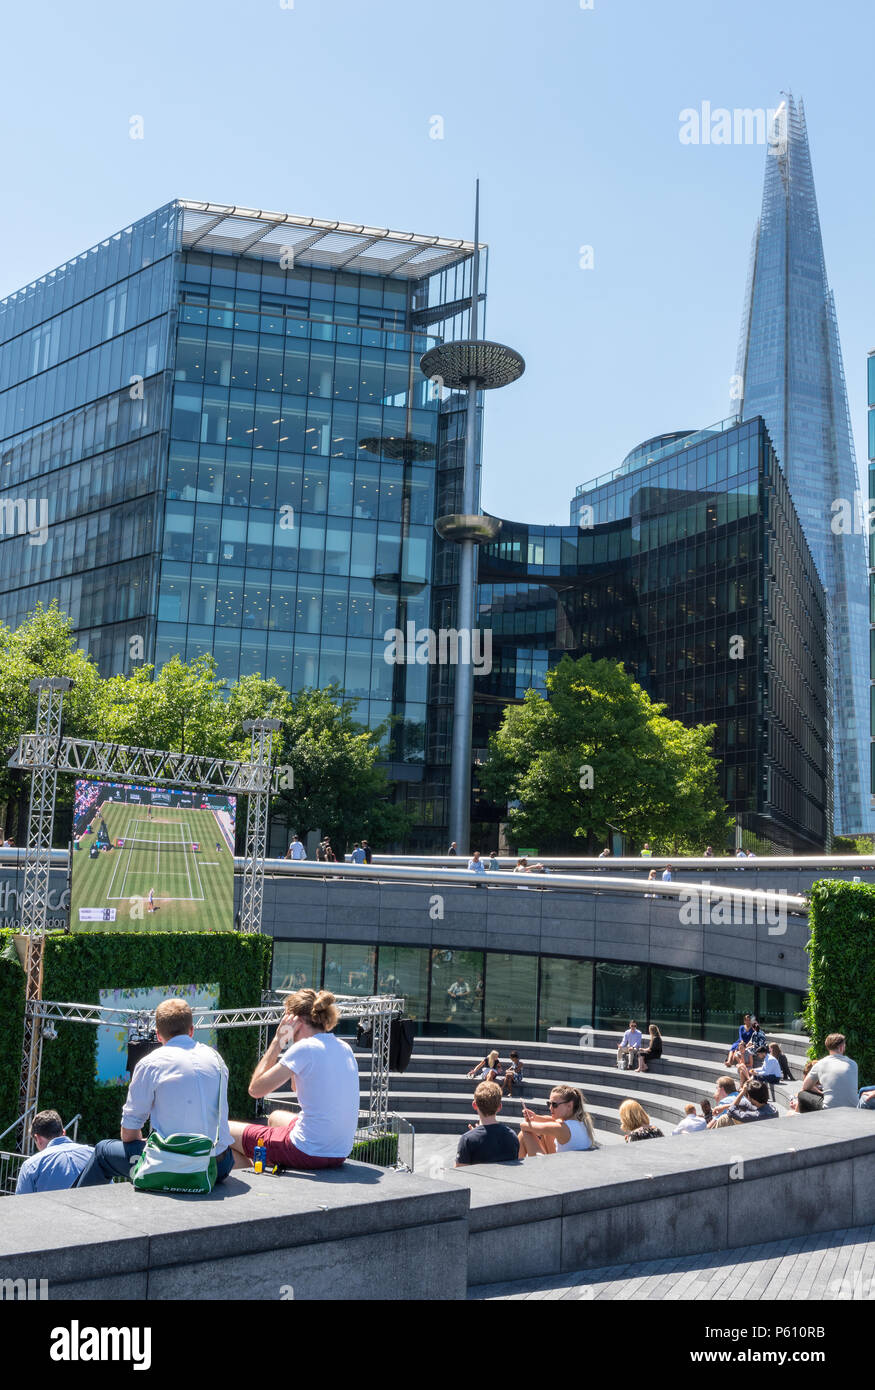 Lond, UK, 27 June 2018. The heatwave continues in central London with clear blue skies and potentially record breaking temperatures. Crowds of tourists and office workers at more london place and Tower bridge enjoying the hot weather and the beautiful sunshine sitting on the grass and sunbathing. Credit: Steve Hawkins Photography/Alamy Live News - Stock Image